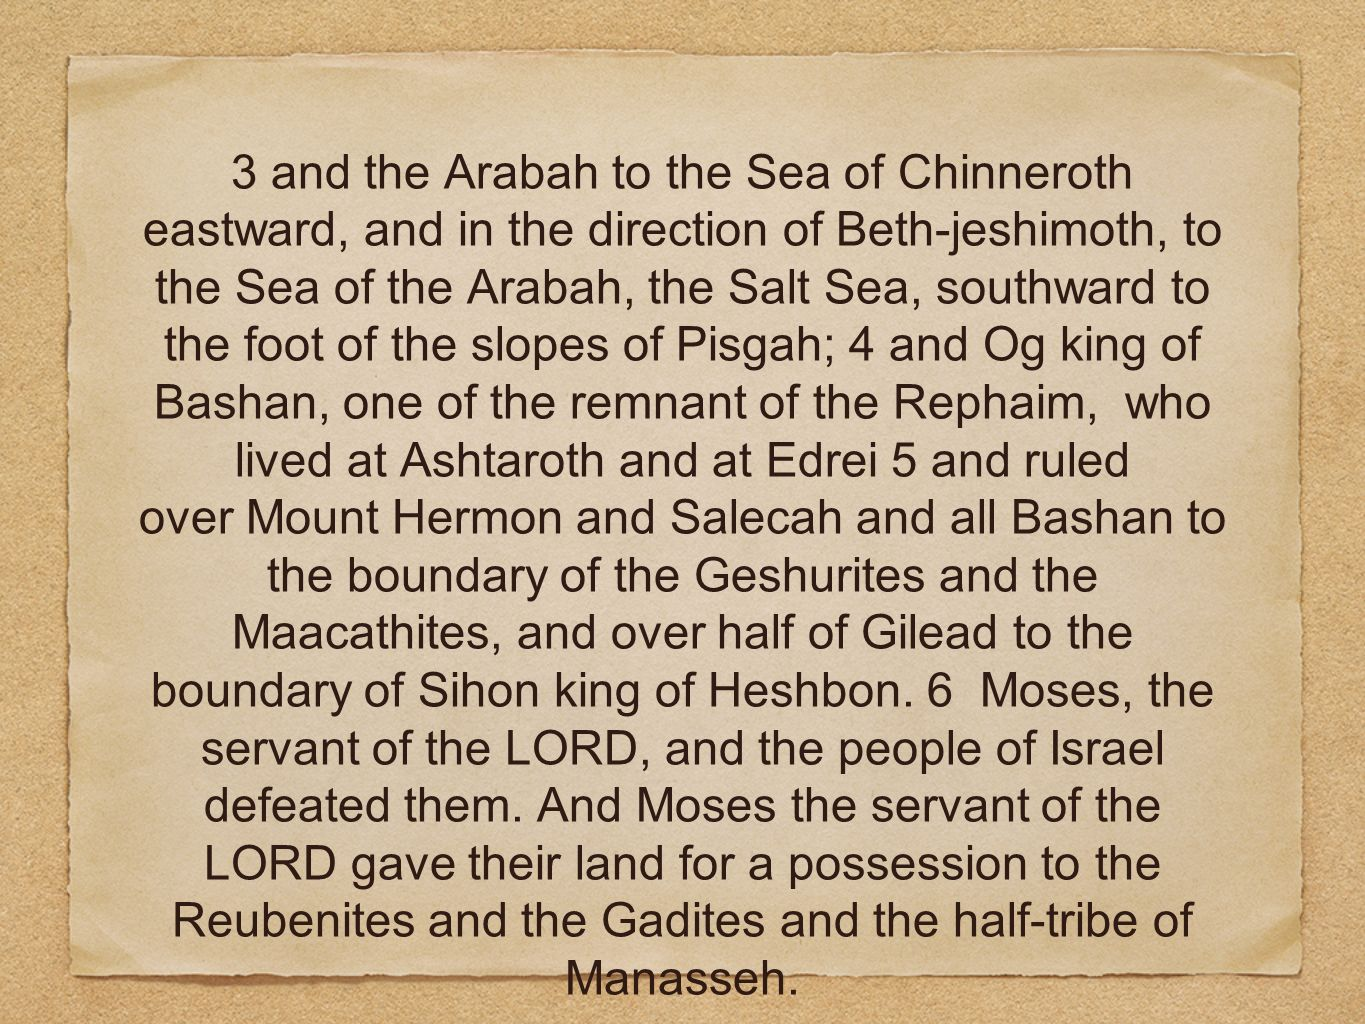 3 and the Arabah to the Sea of Chinneroth eastward, and in the direction of Beth-jeshimoth, to the Sea of the Arabah, the Salt Sea, southward to the foot of the slopes of Pisgah; 4 and Og king of Bashan, one of the remnant of the Rephaim, who lived at Ashtaroth and at Edrei 5 and ruled over Mount Hermon and Salecah and all Bashan to the boundary of the Geshurites and the Maacathites, and over half of Gilead to the boundary of Sihon king of Heshbon.